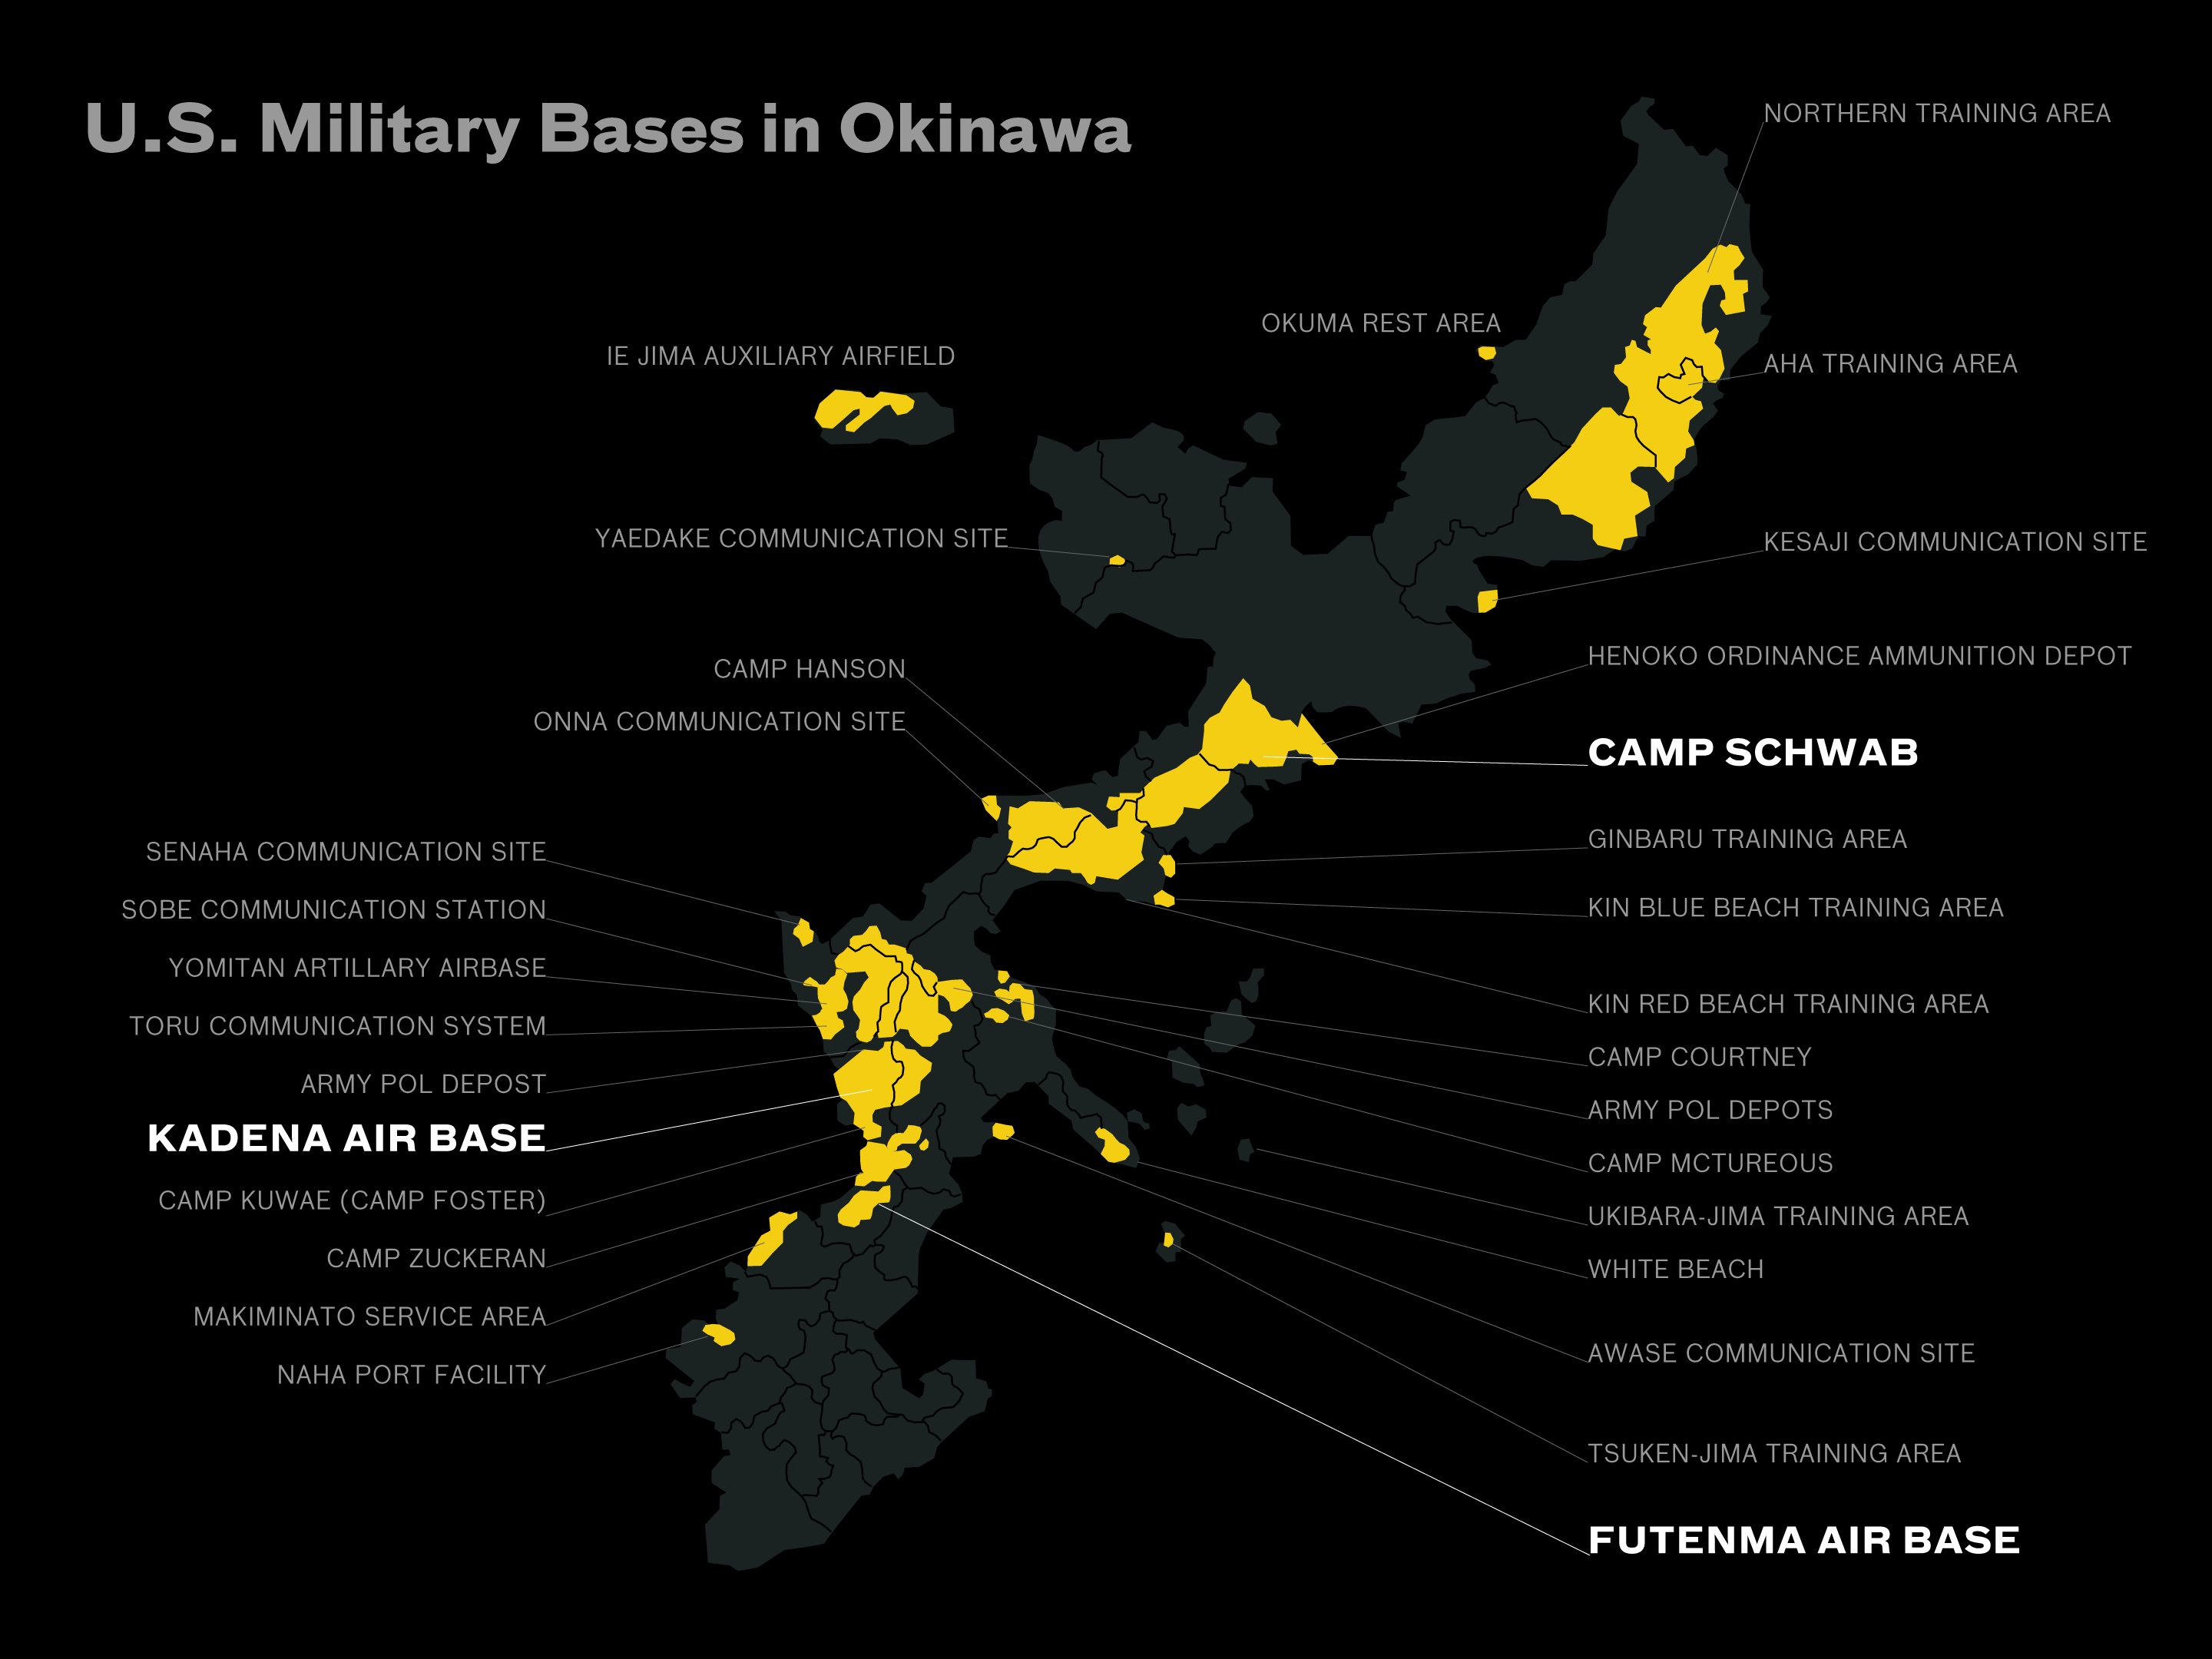 Map Of Okinawa Military Bases Background Surrounding The - Us military bases in okinawa map